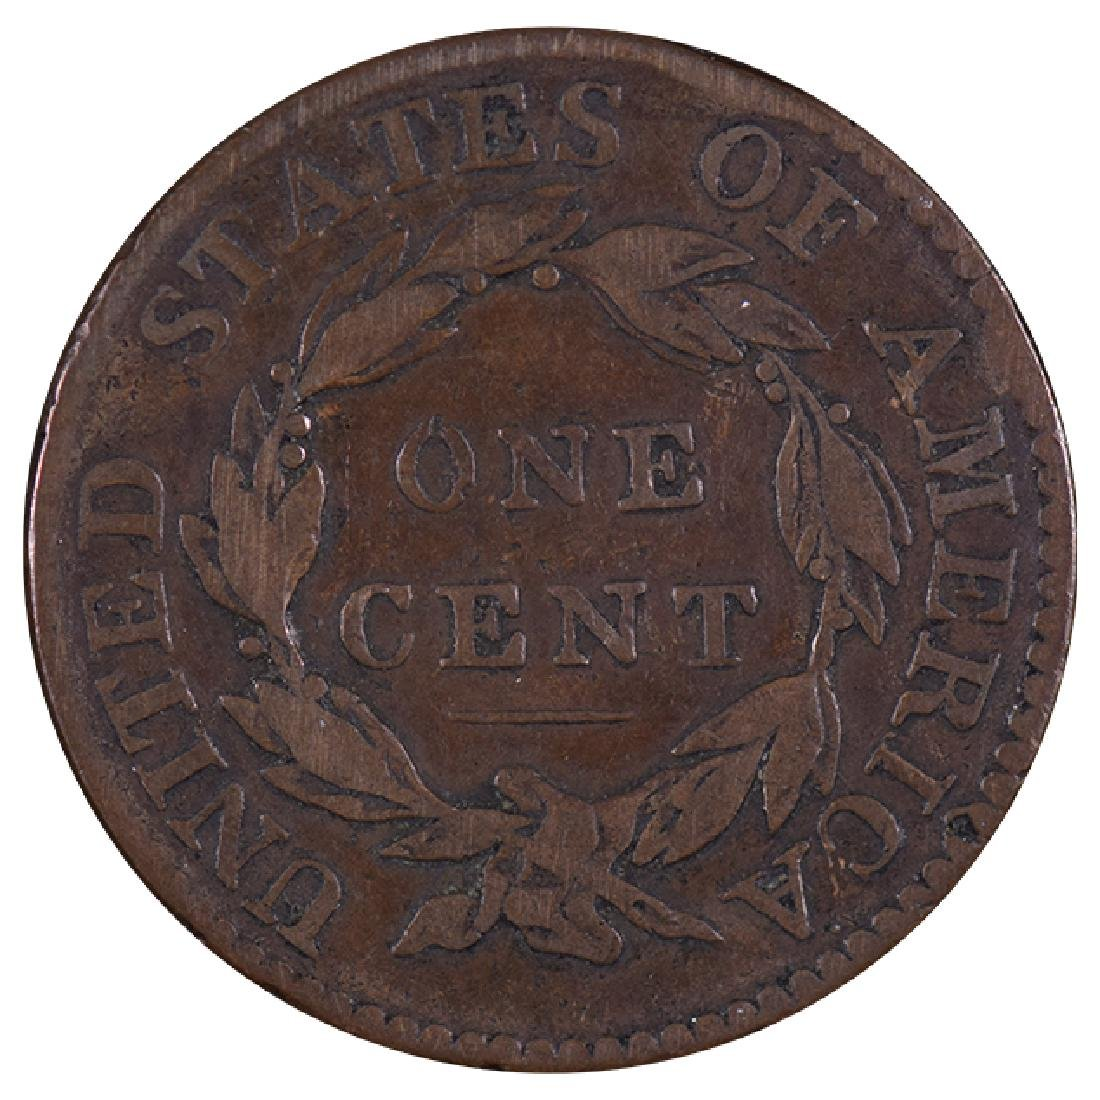 1819/8 Coronet Large Cent Coin - 2